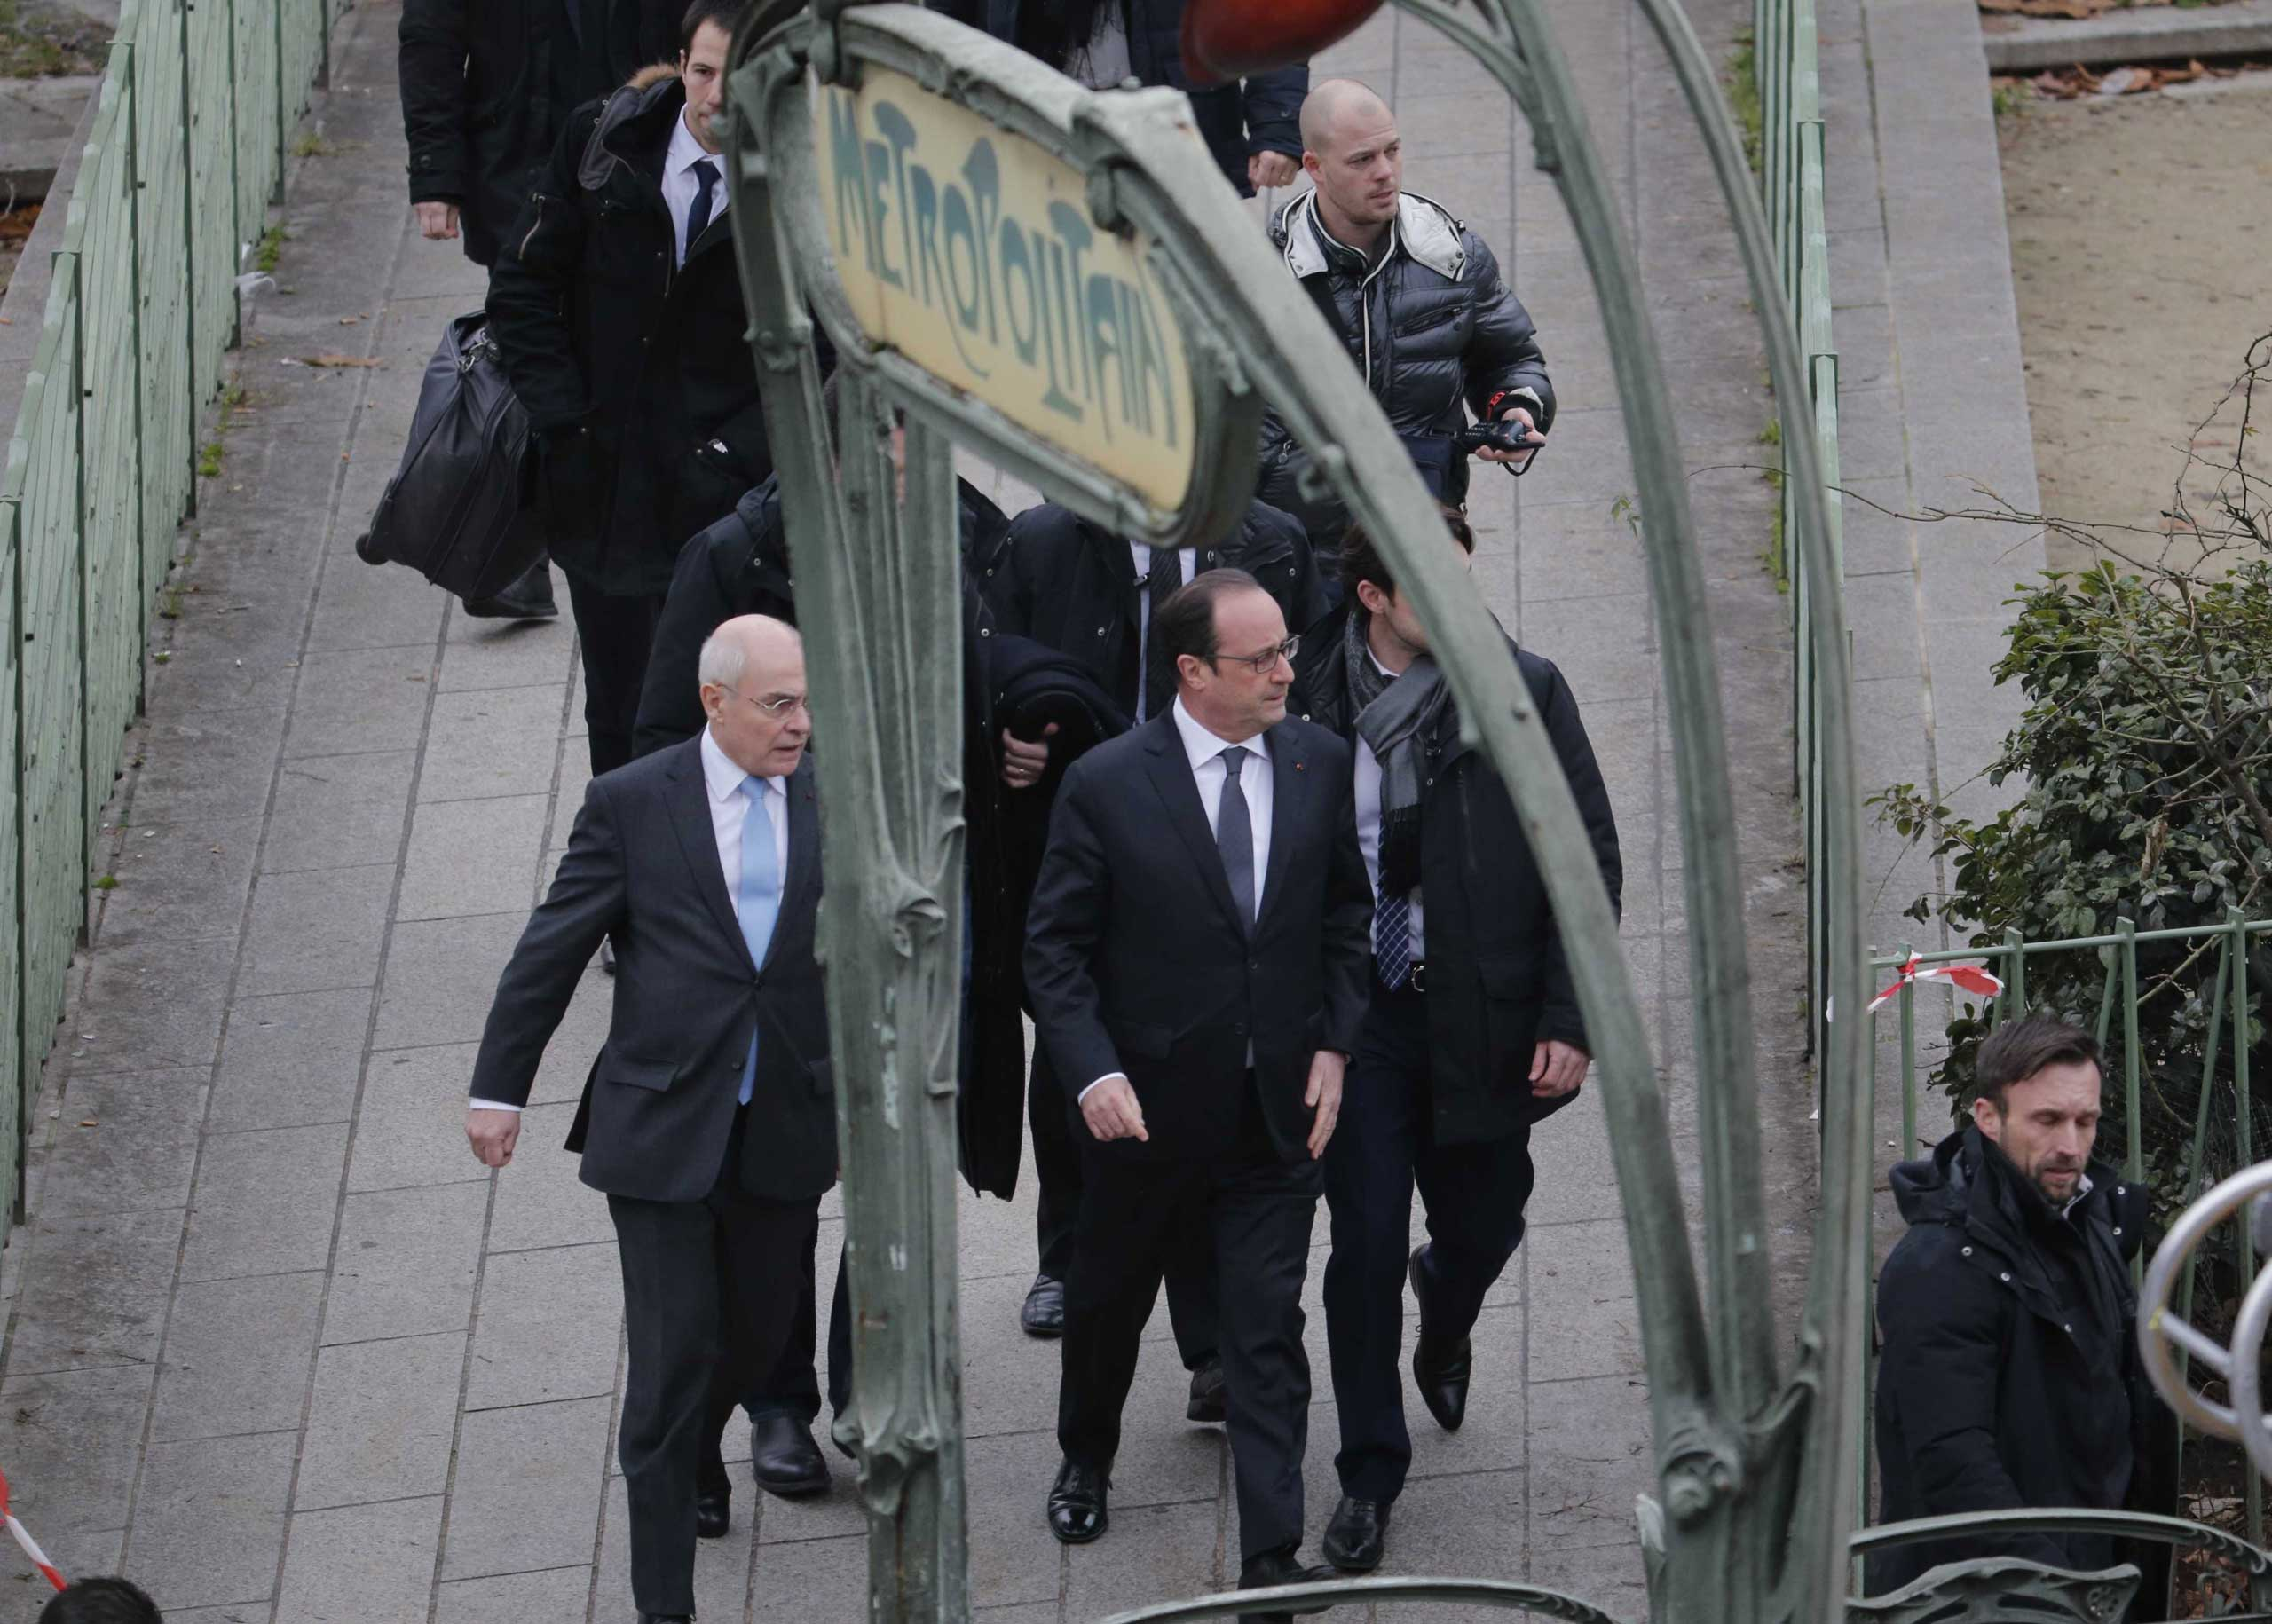 President Francois Hollande arrives after a shooting at the Paris offices of Charlie Hebdo, a satirical newspaper, Jan. 7, 2015.